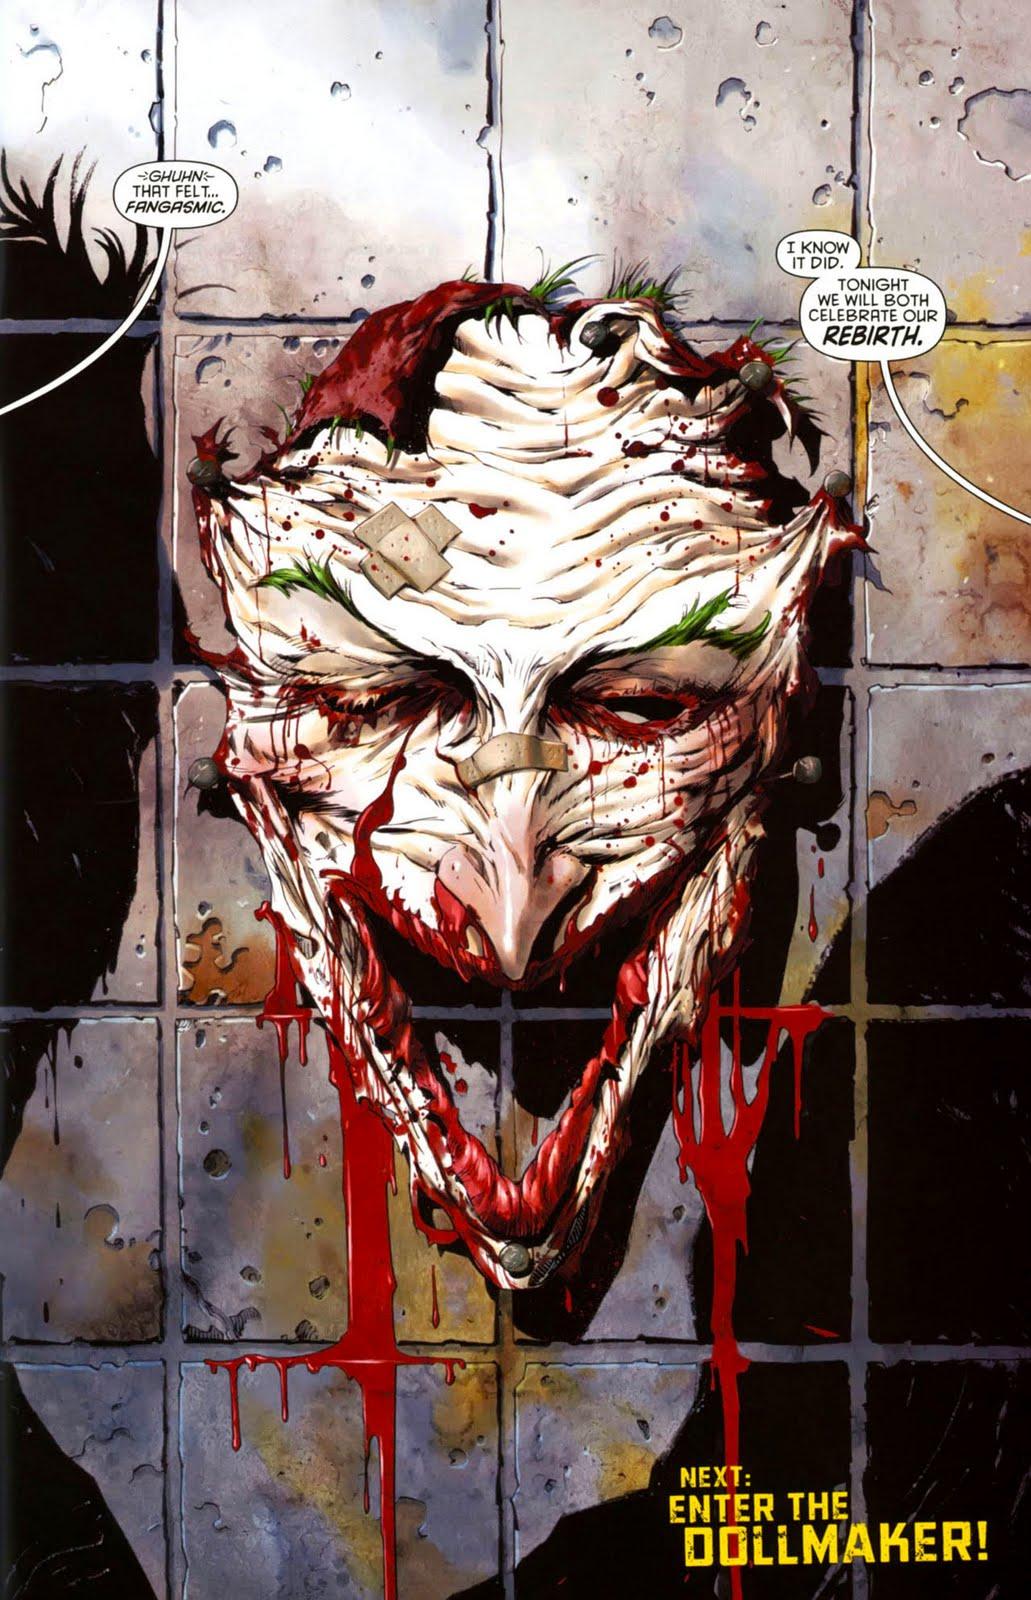 http://insidepulse.com/wp-content/uploads/2011/10/Detective-Comics-1-Cliffhanger-Joker-Doll-Maker-2011.jpg